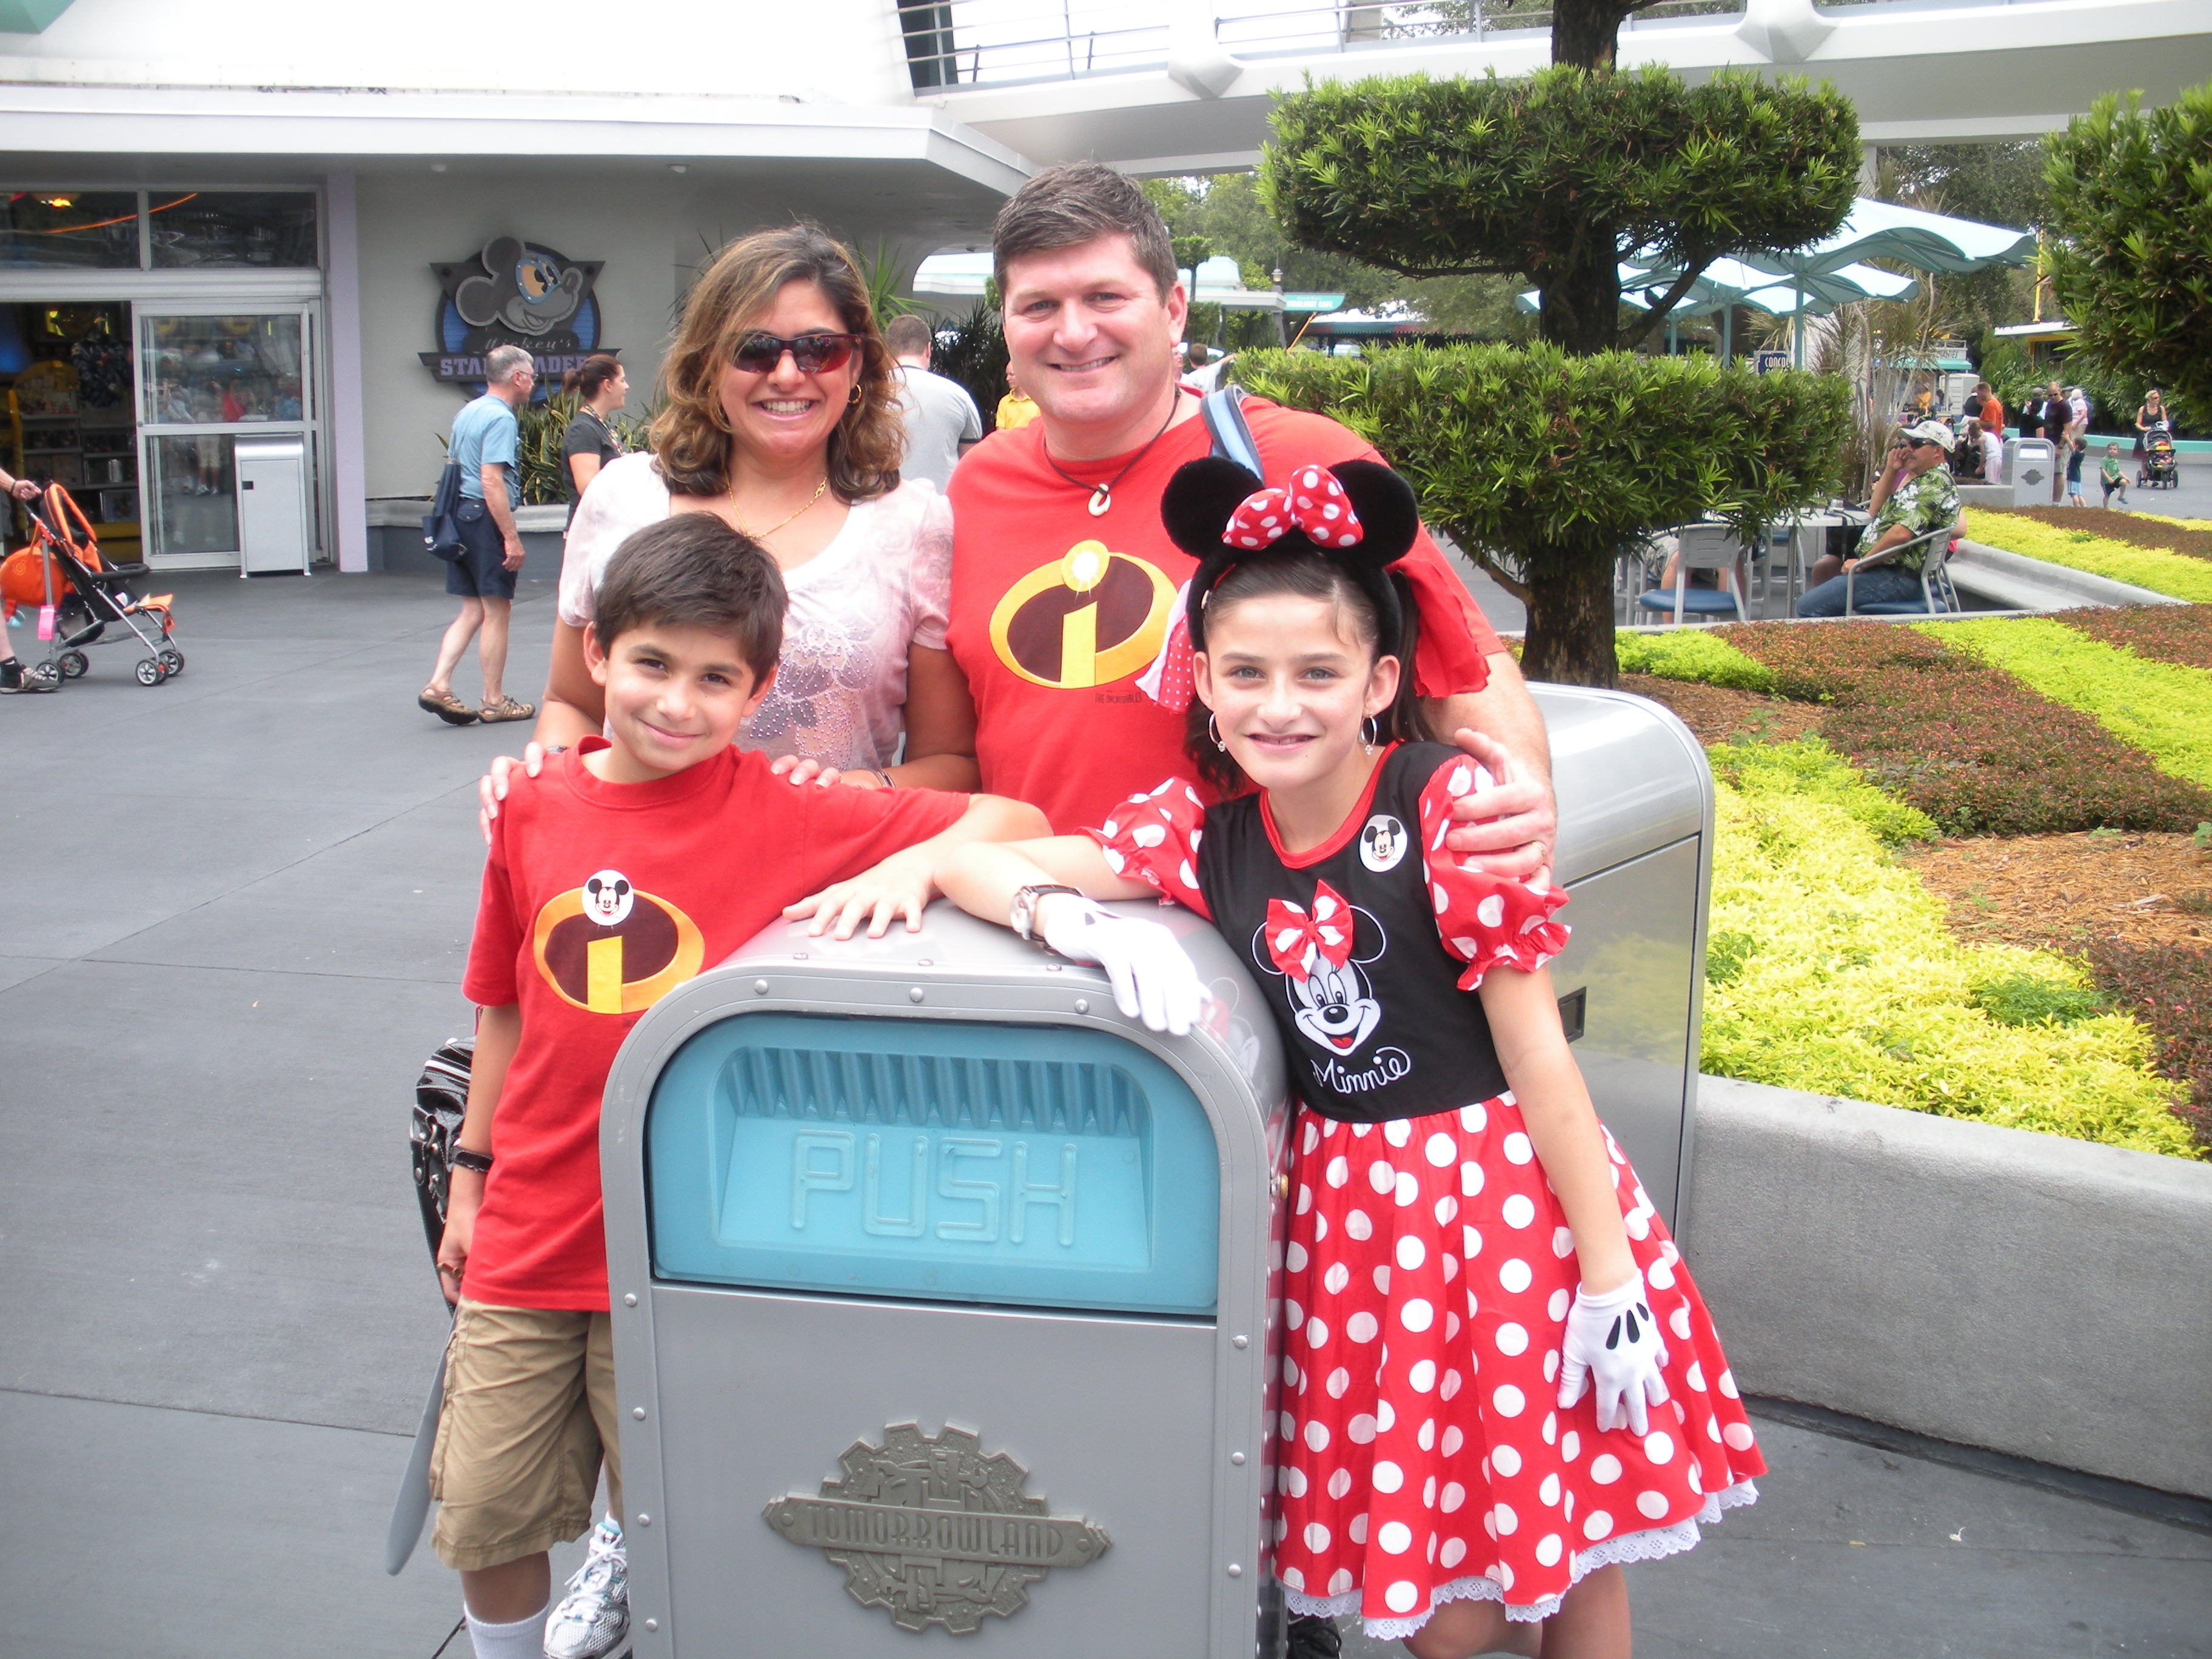 Push is the only trash can I know that inspires family photos!